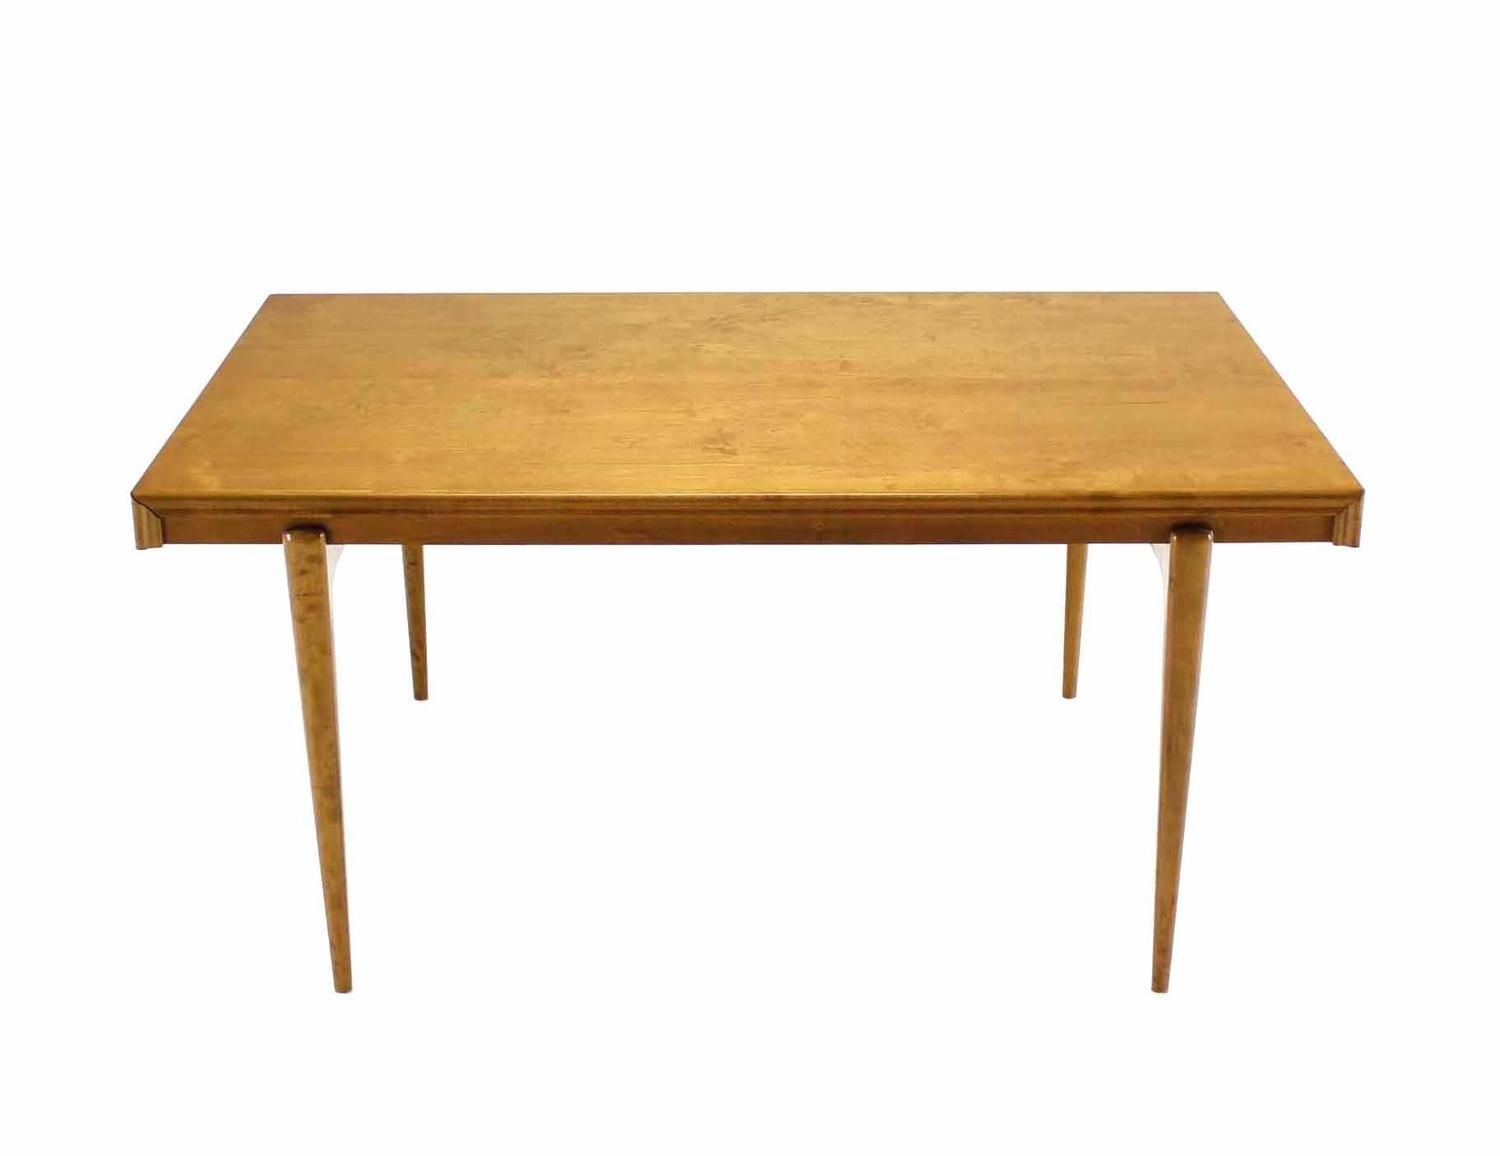 Swedish Blond Birch Dining Table By Edmond Spence For Sale